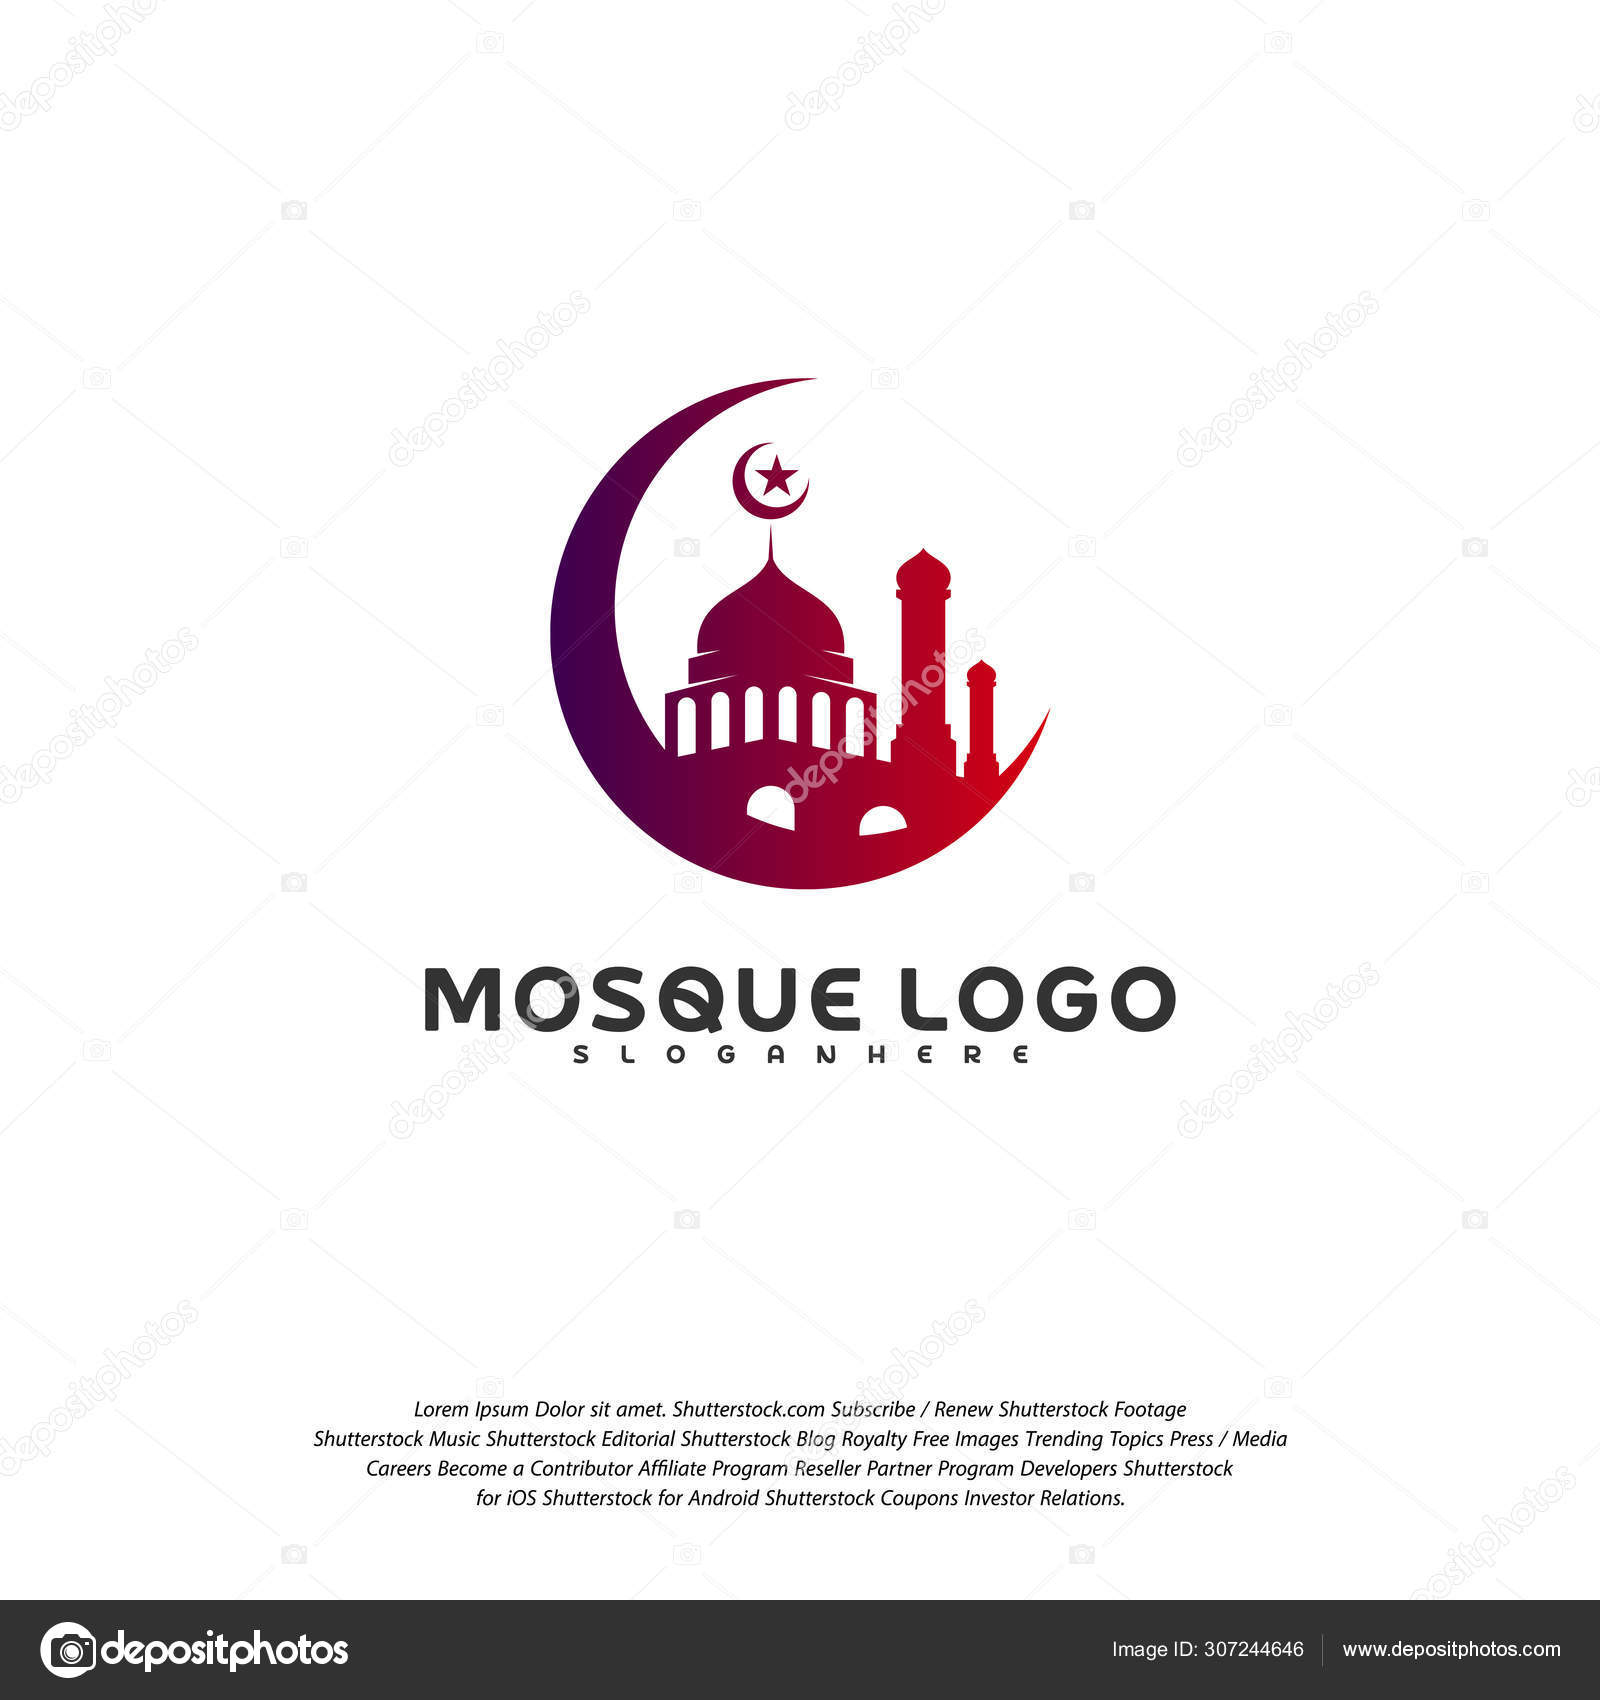 Islamic Logo Design Vector Mosque Logo Template Muslims Learn Logo Templates Stock Vector C Shuttersport 307244646